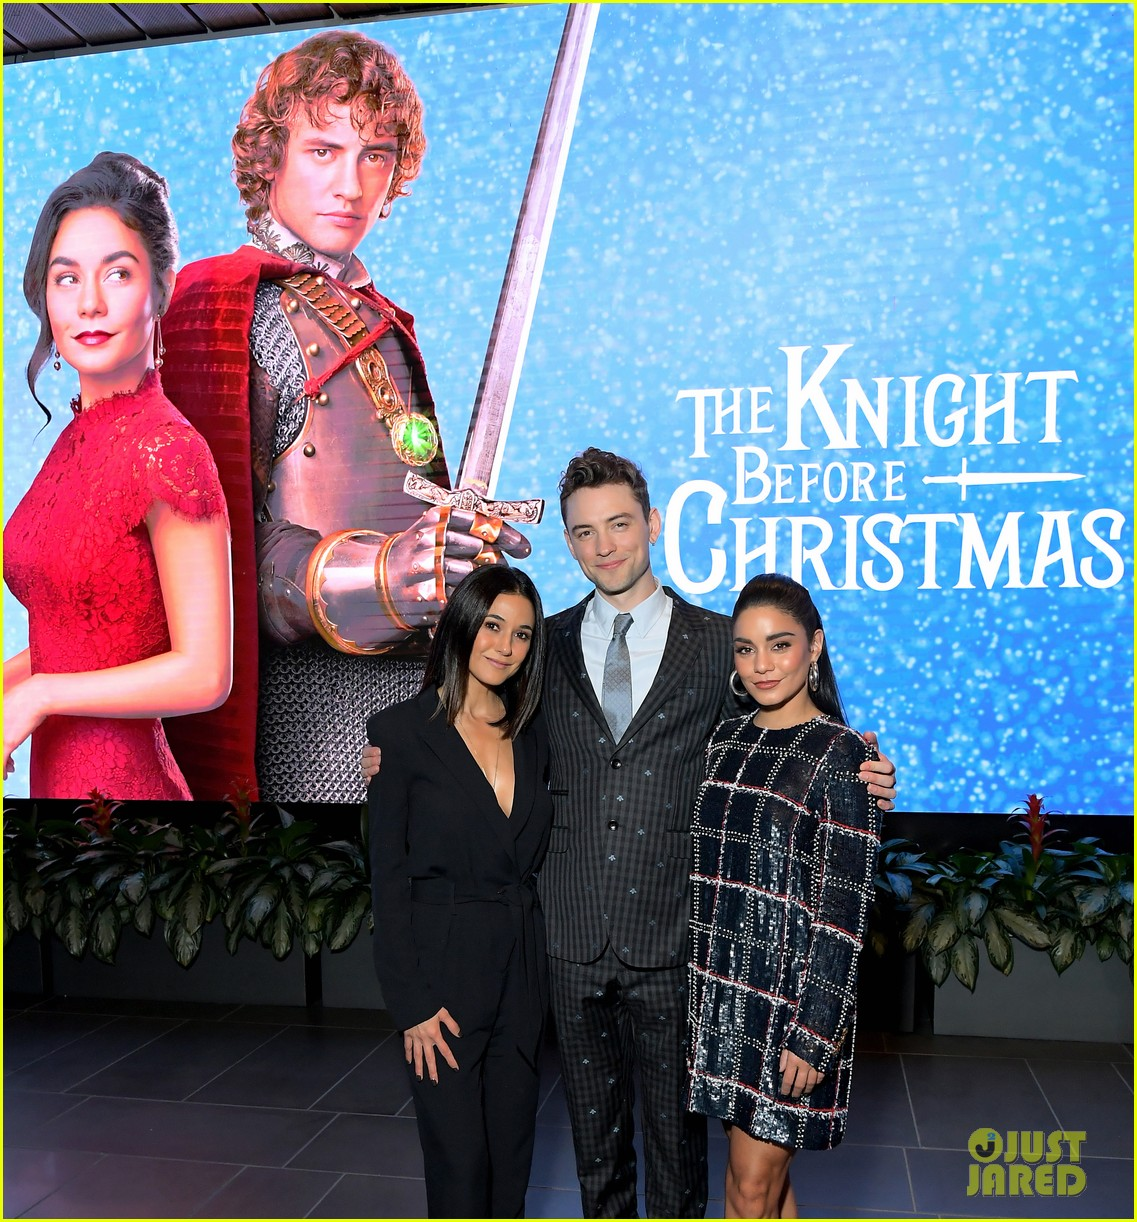 the knight before christmas - photo #5